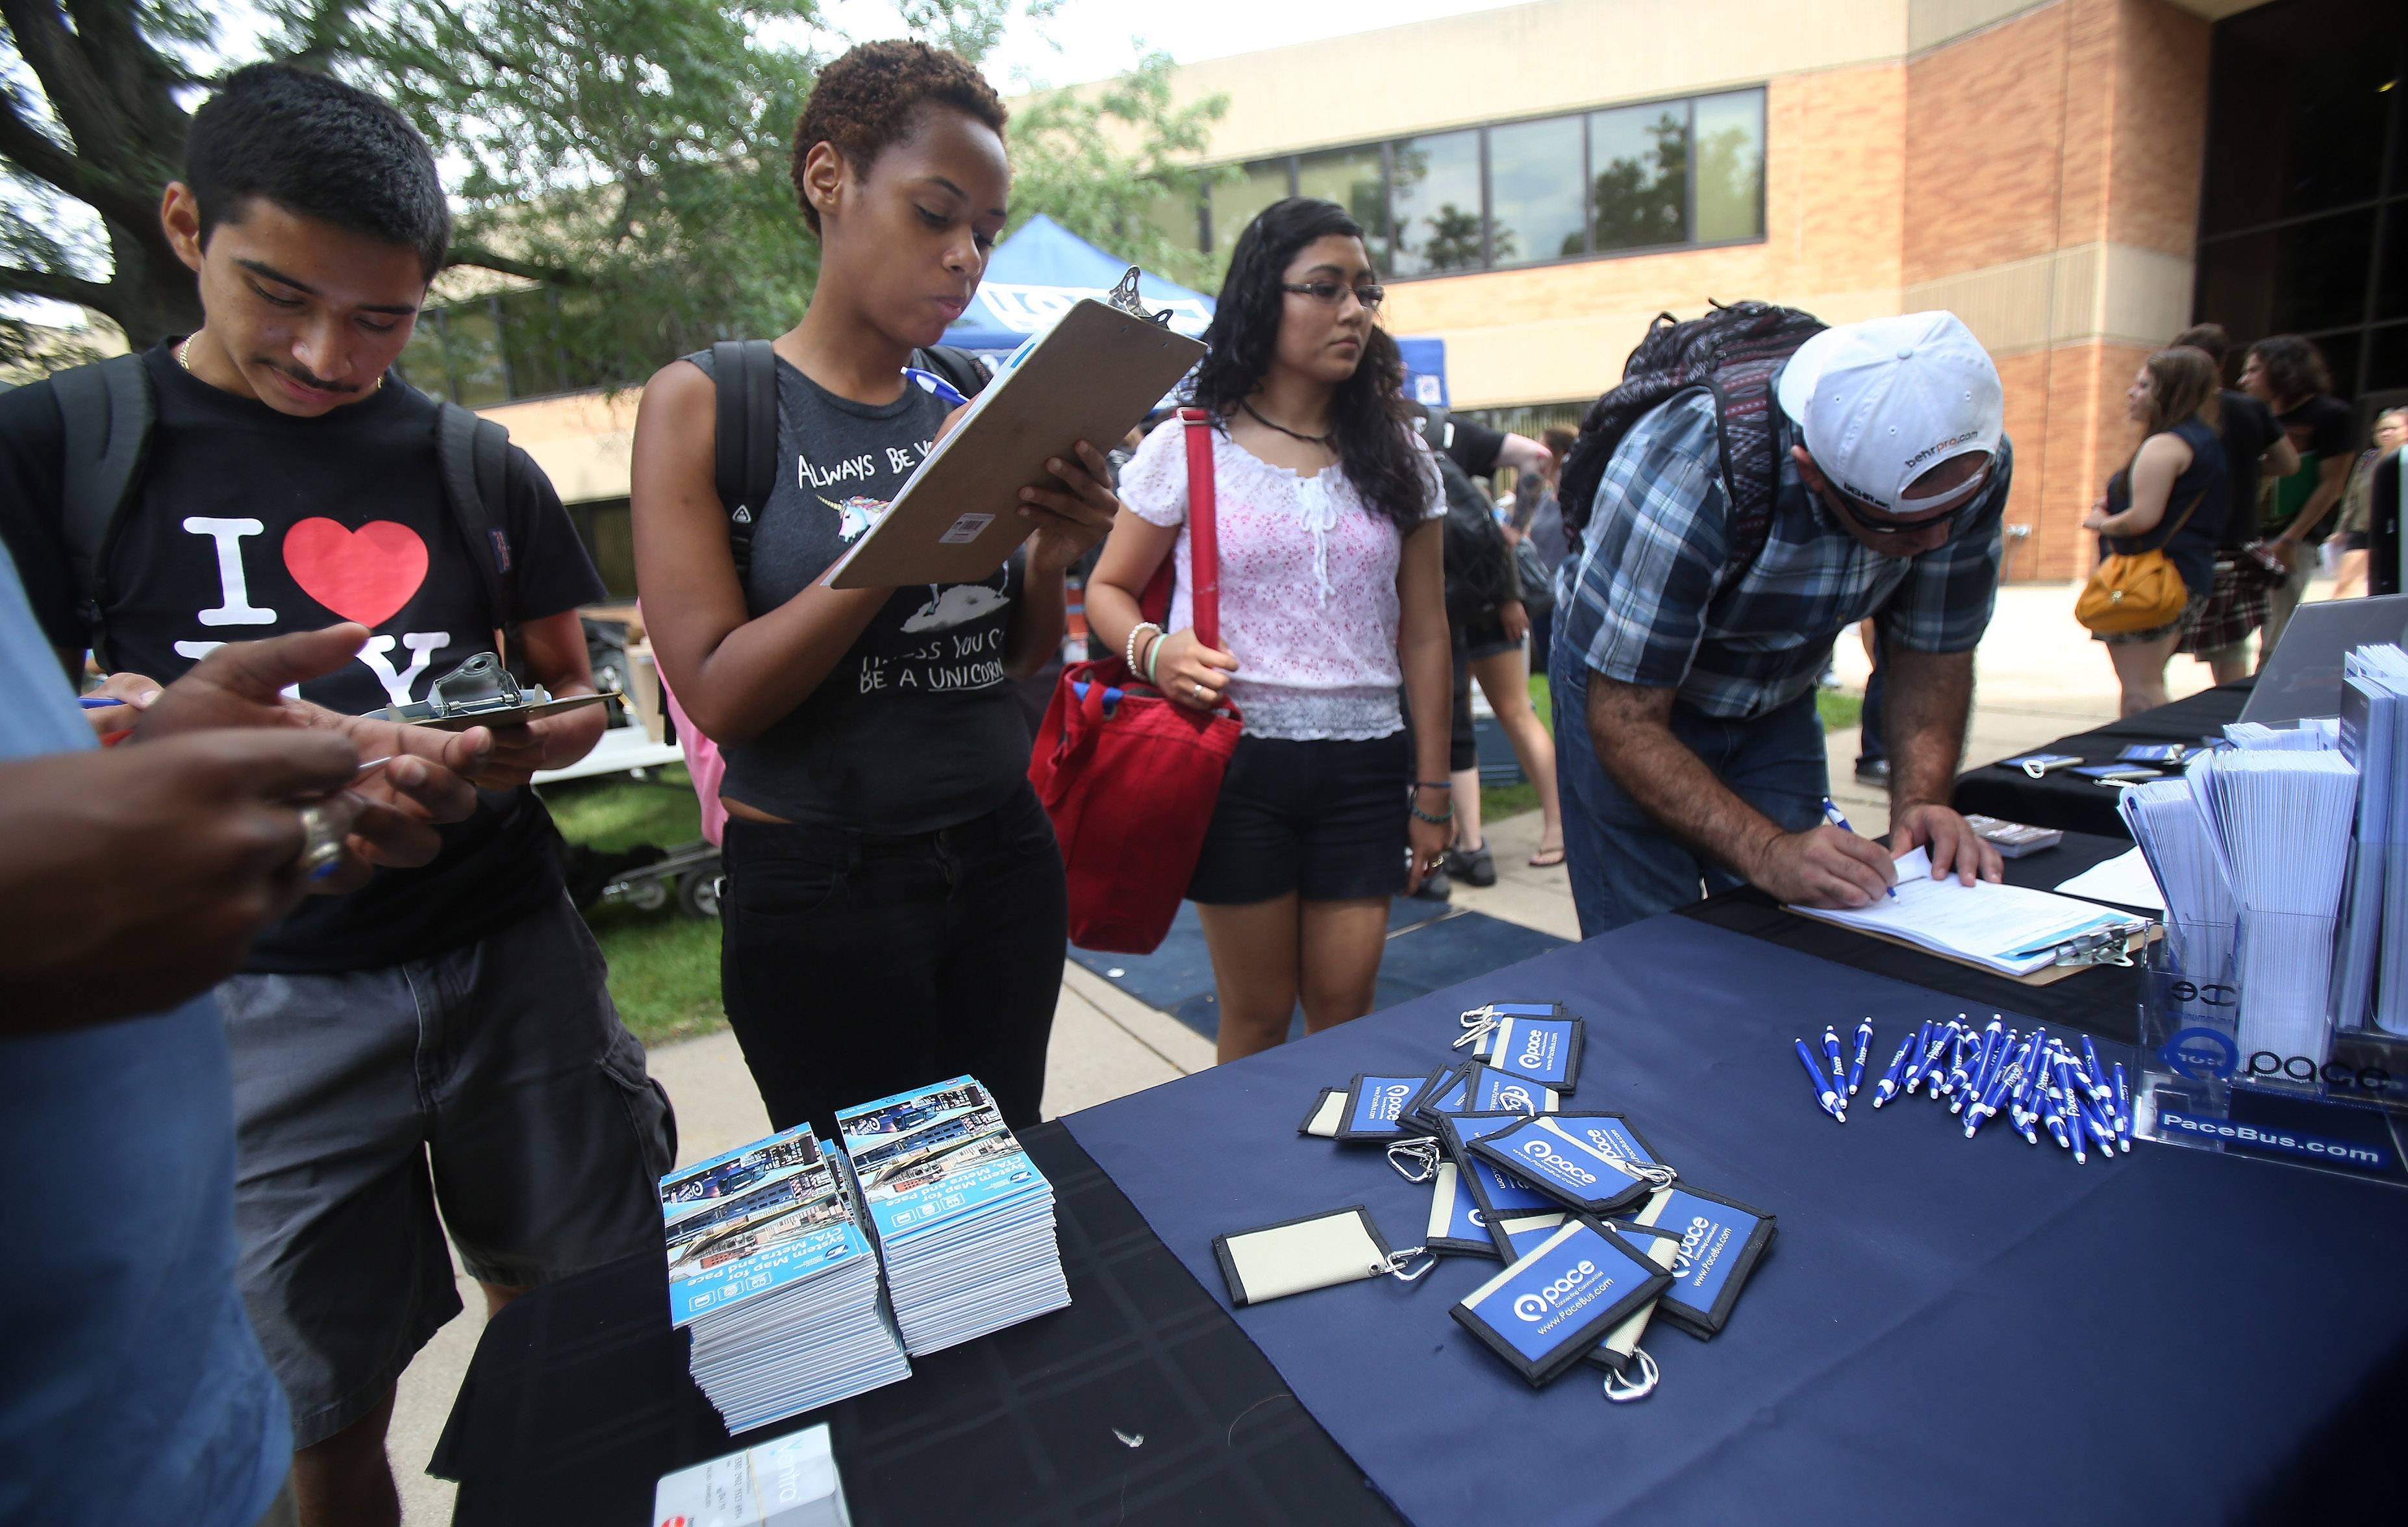 College of Lake County students fill out forms for the Pace Campus Connection card during the first day of classes Monday. For $175, students can ride any Pace bus in the suburbs during the semester.